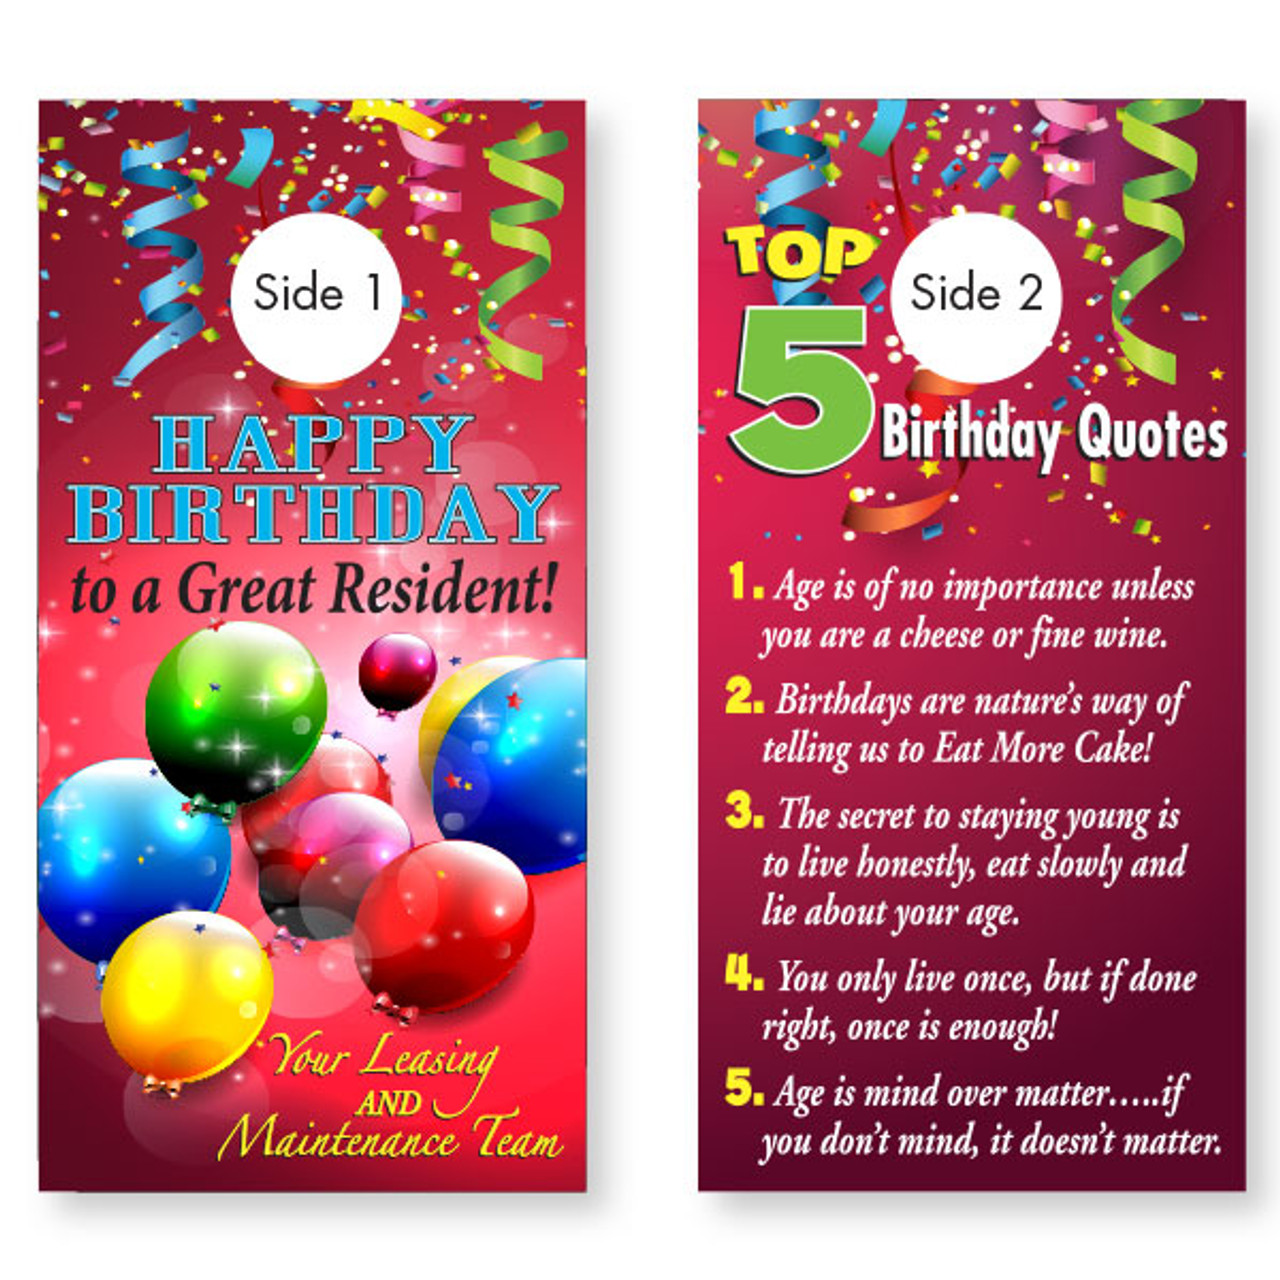 Birthday Quotes Doorhanger - 2 Sided